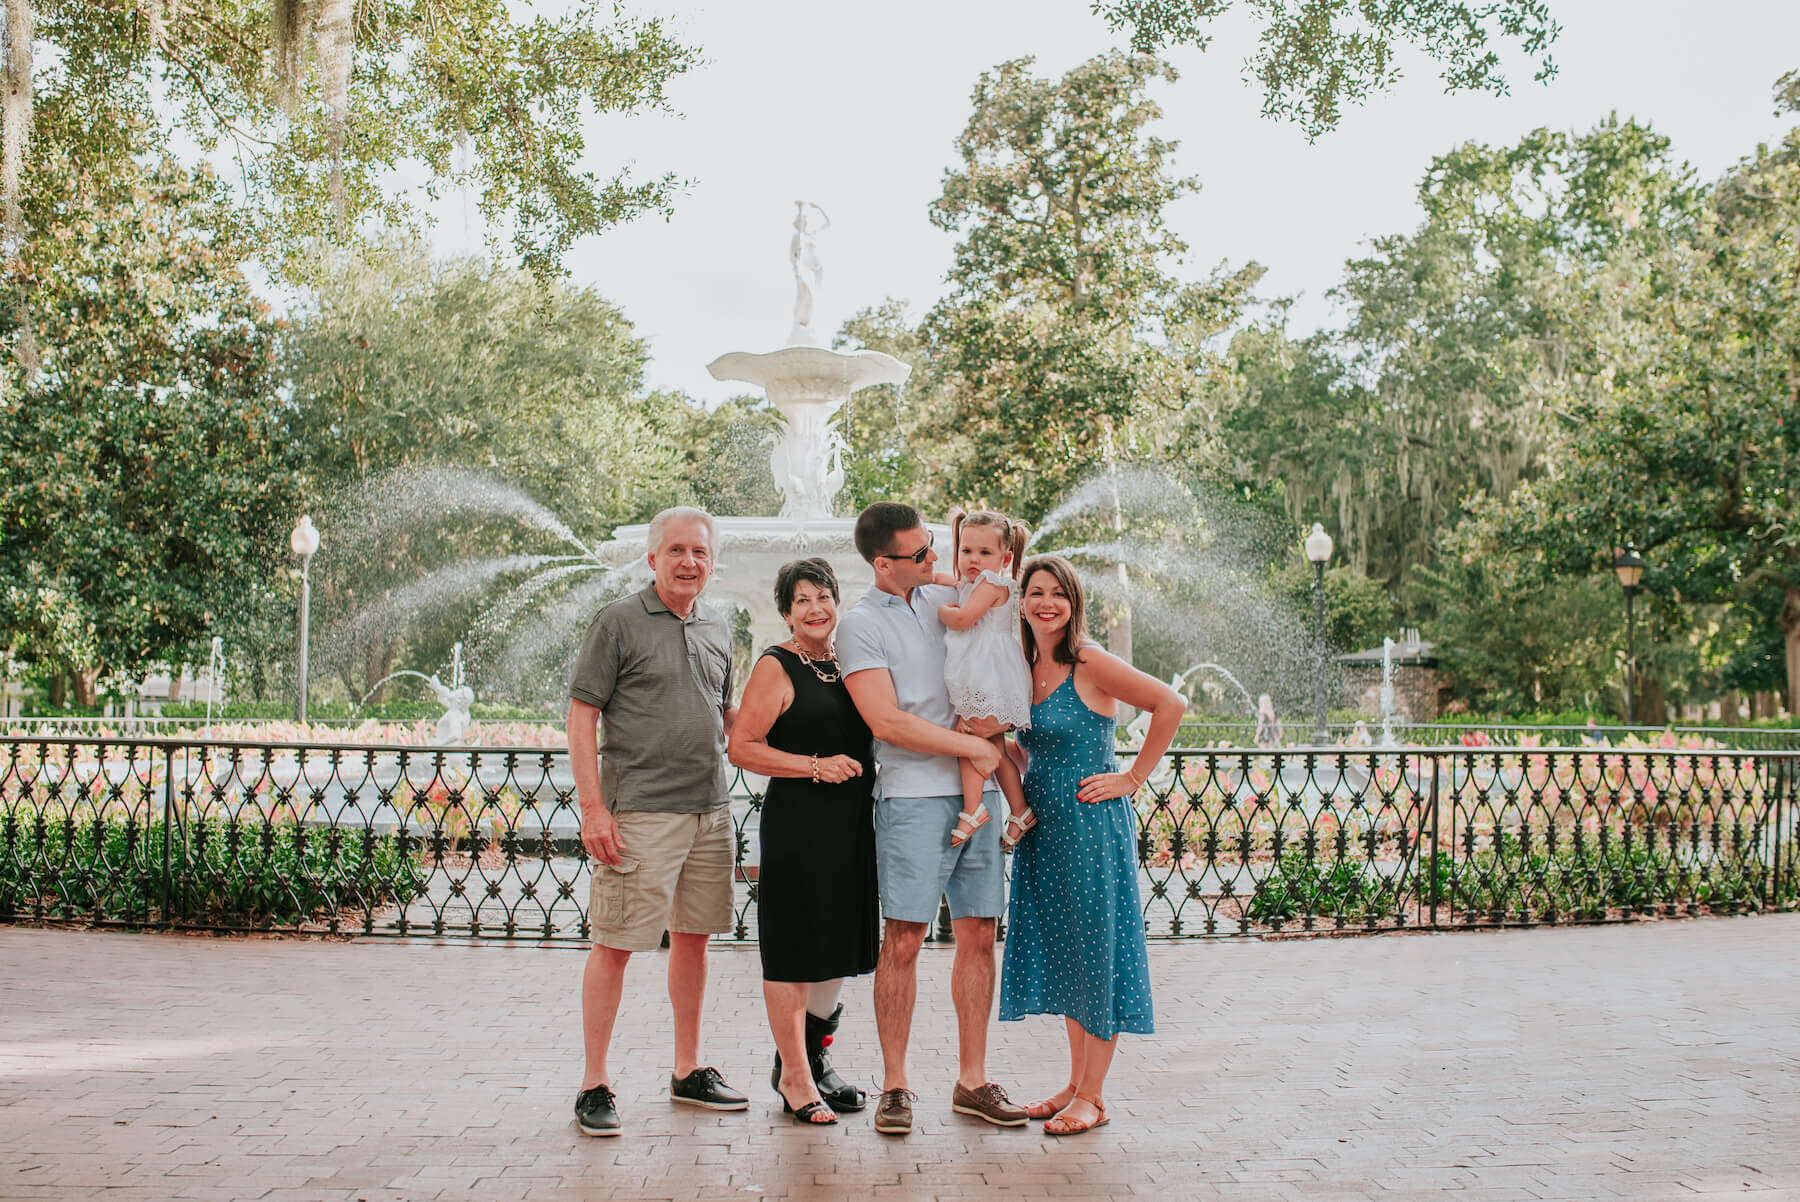 multigenerational family standing in front of the fountain in Savannah, Georgia, United States of America